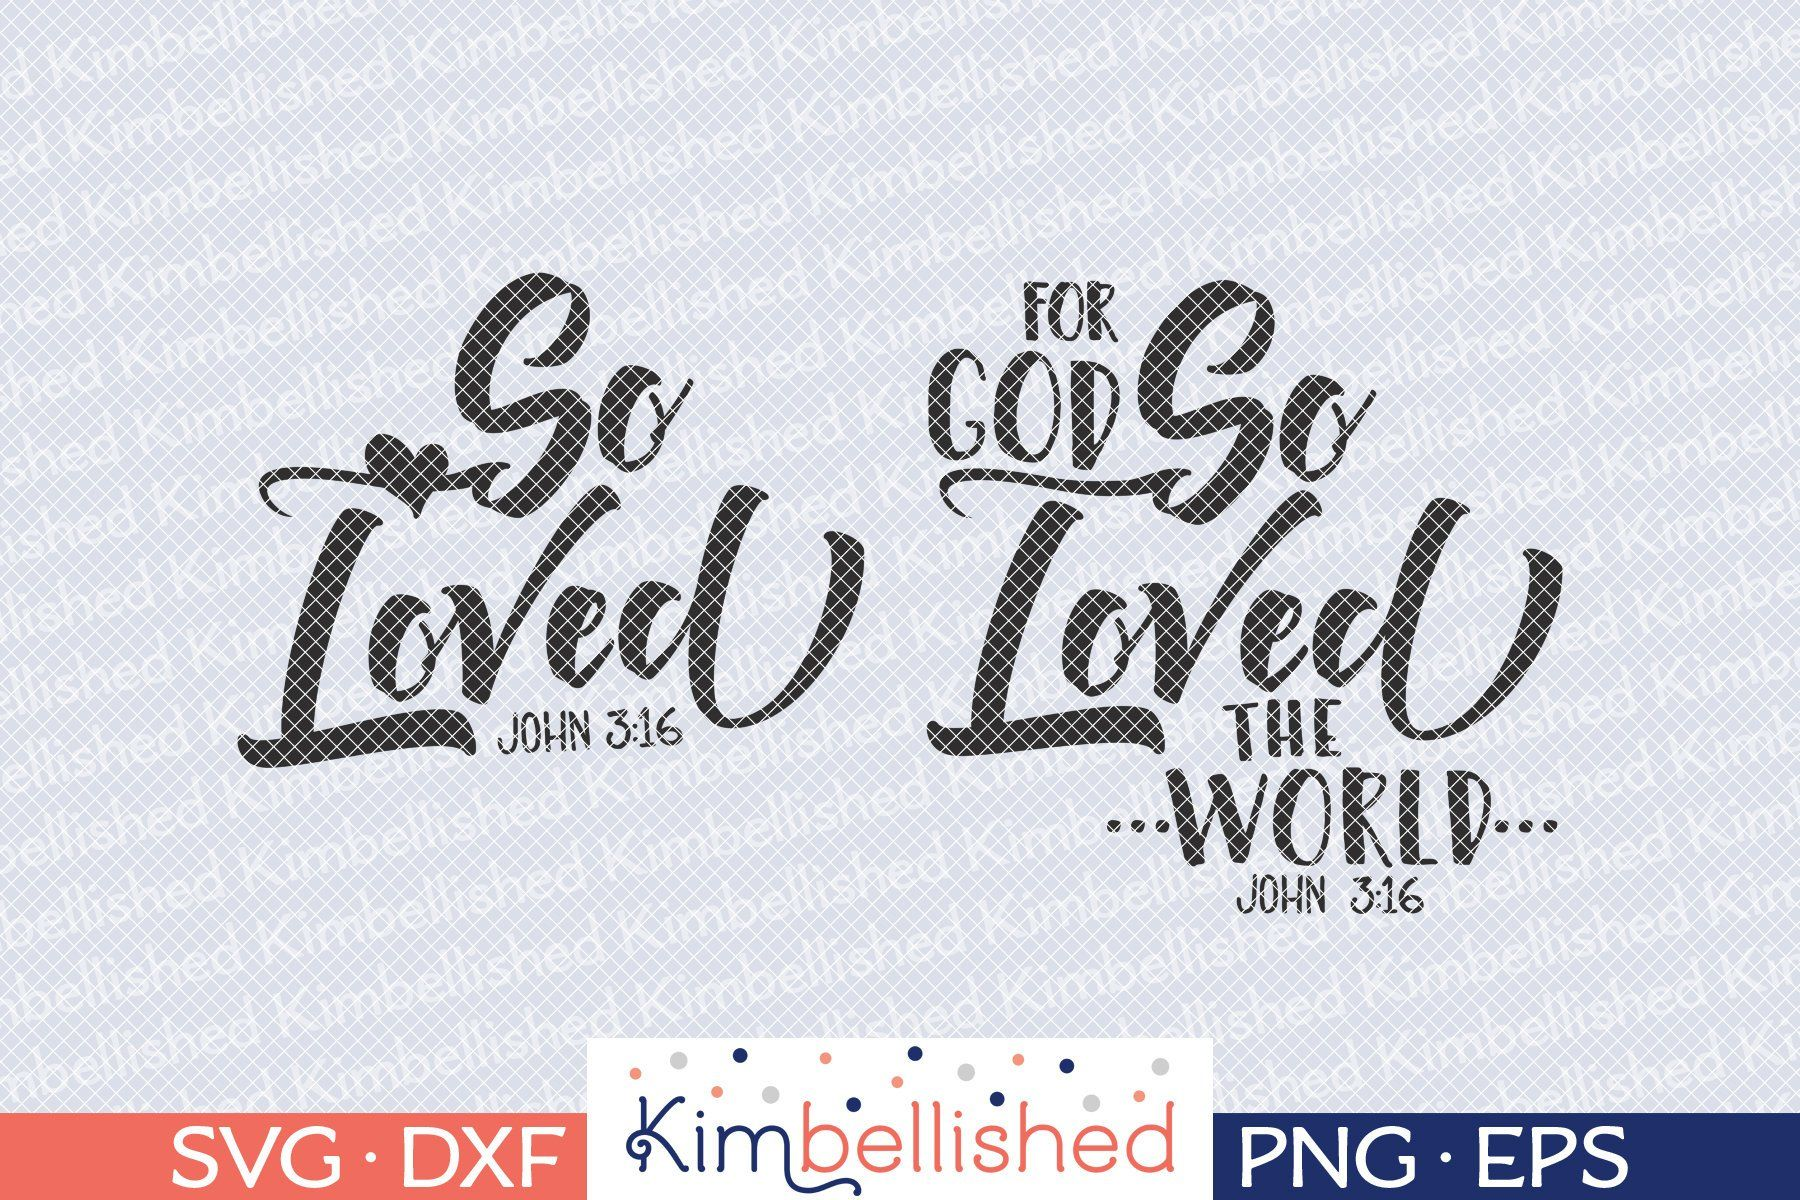 Download Pin on SVG Cutting Files by Kimbellished